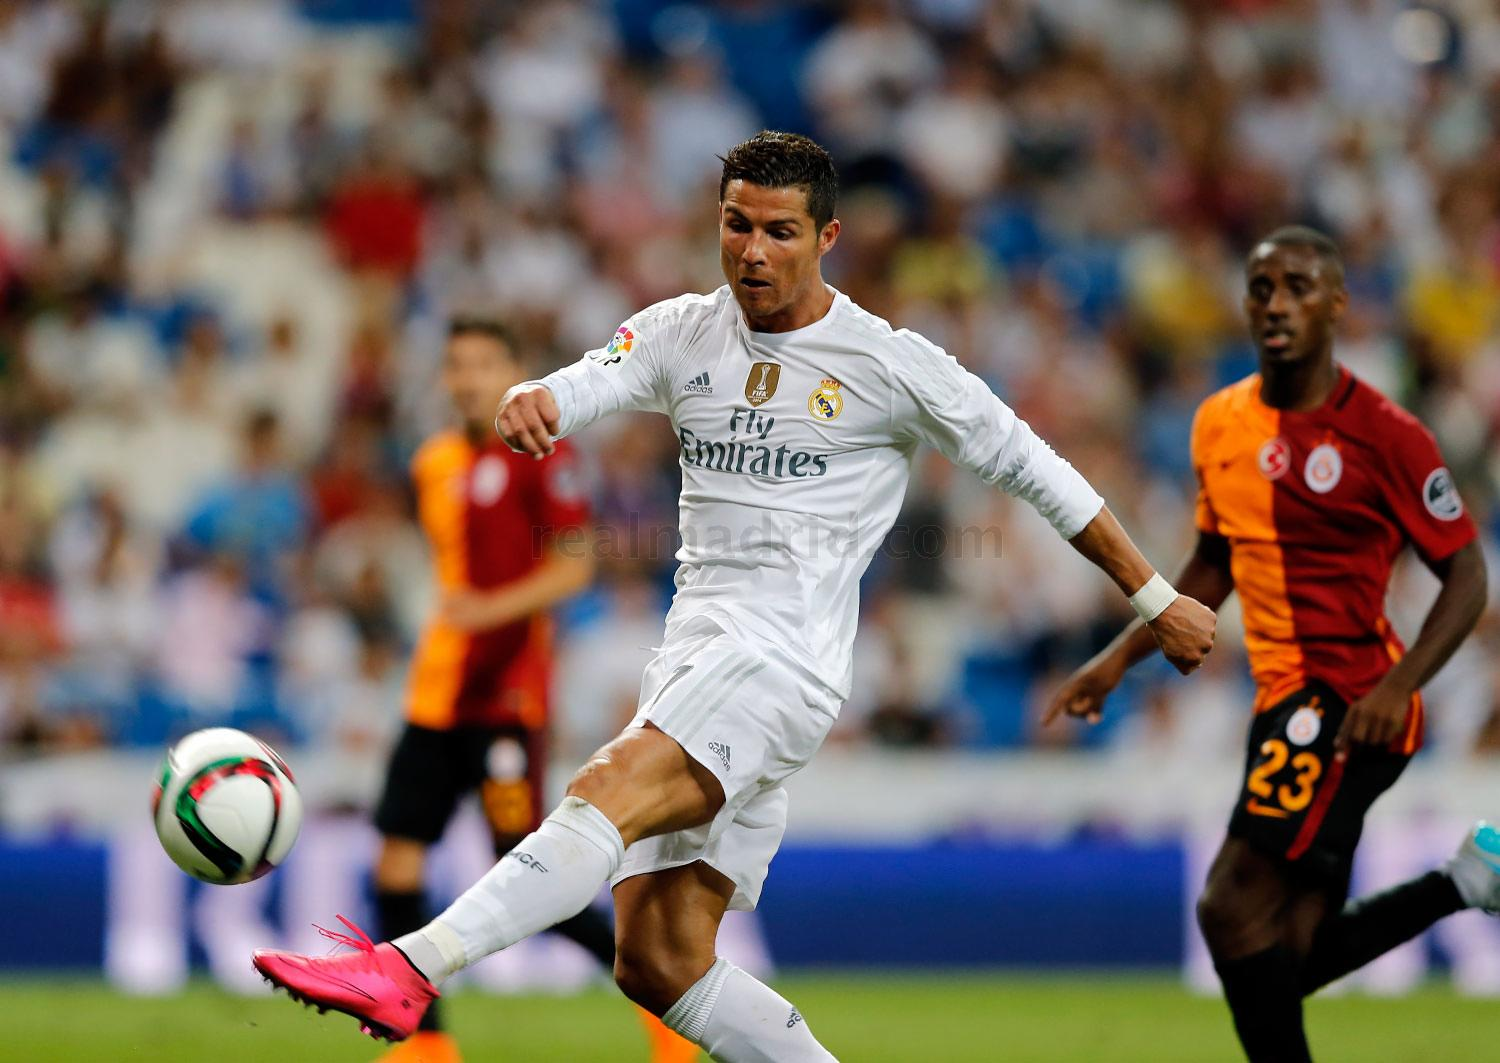 Real Madrid - Real Madrid - Galatasaray - 19-08-2015